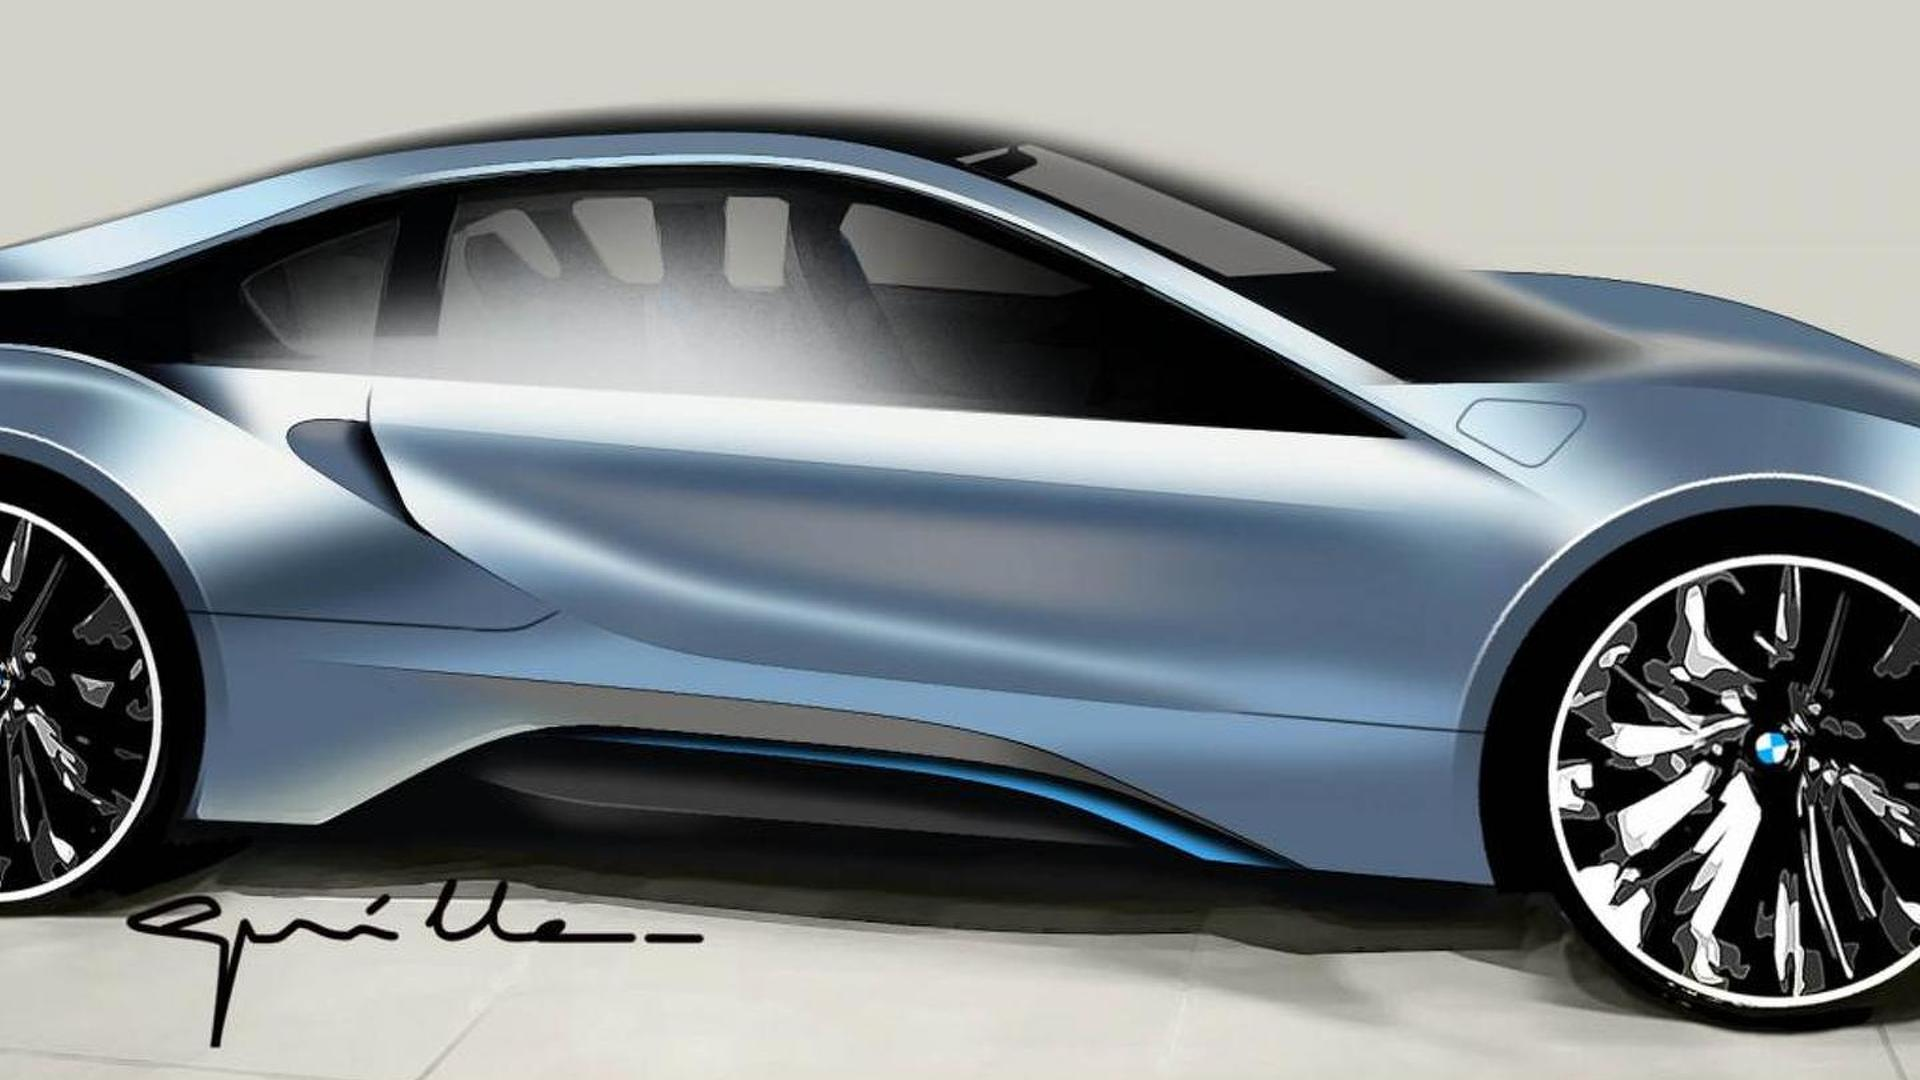 Bmw Reportedly Celebrating Centenary With Super Fast I8 Codenamed